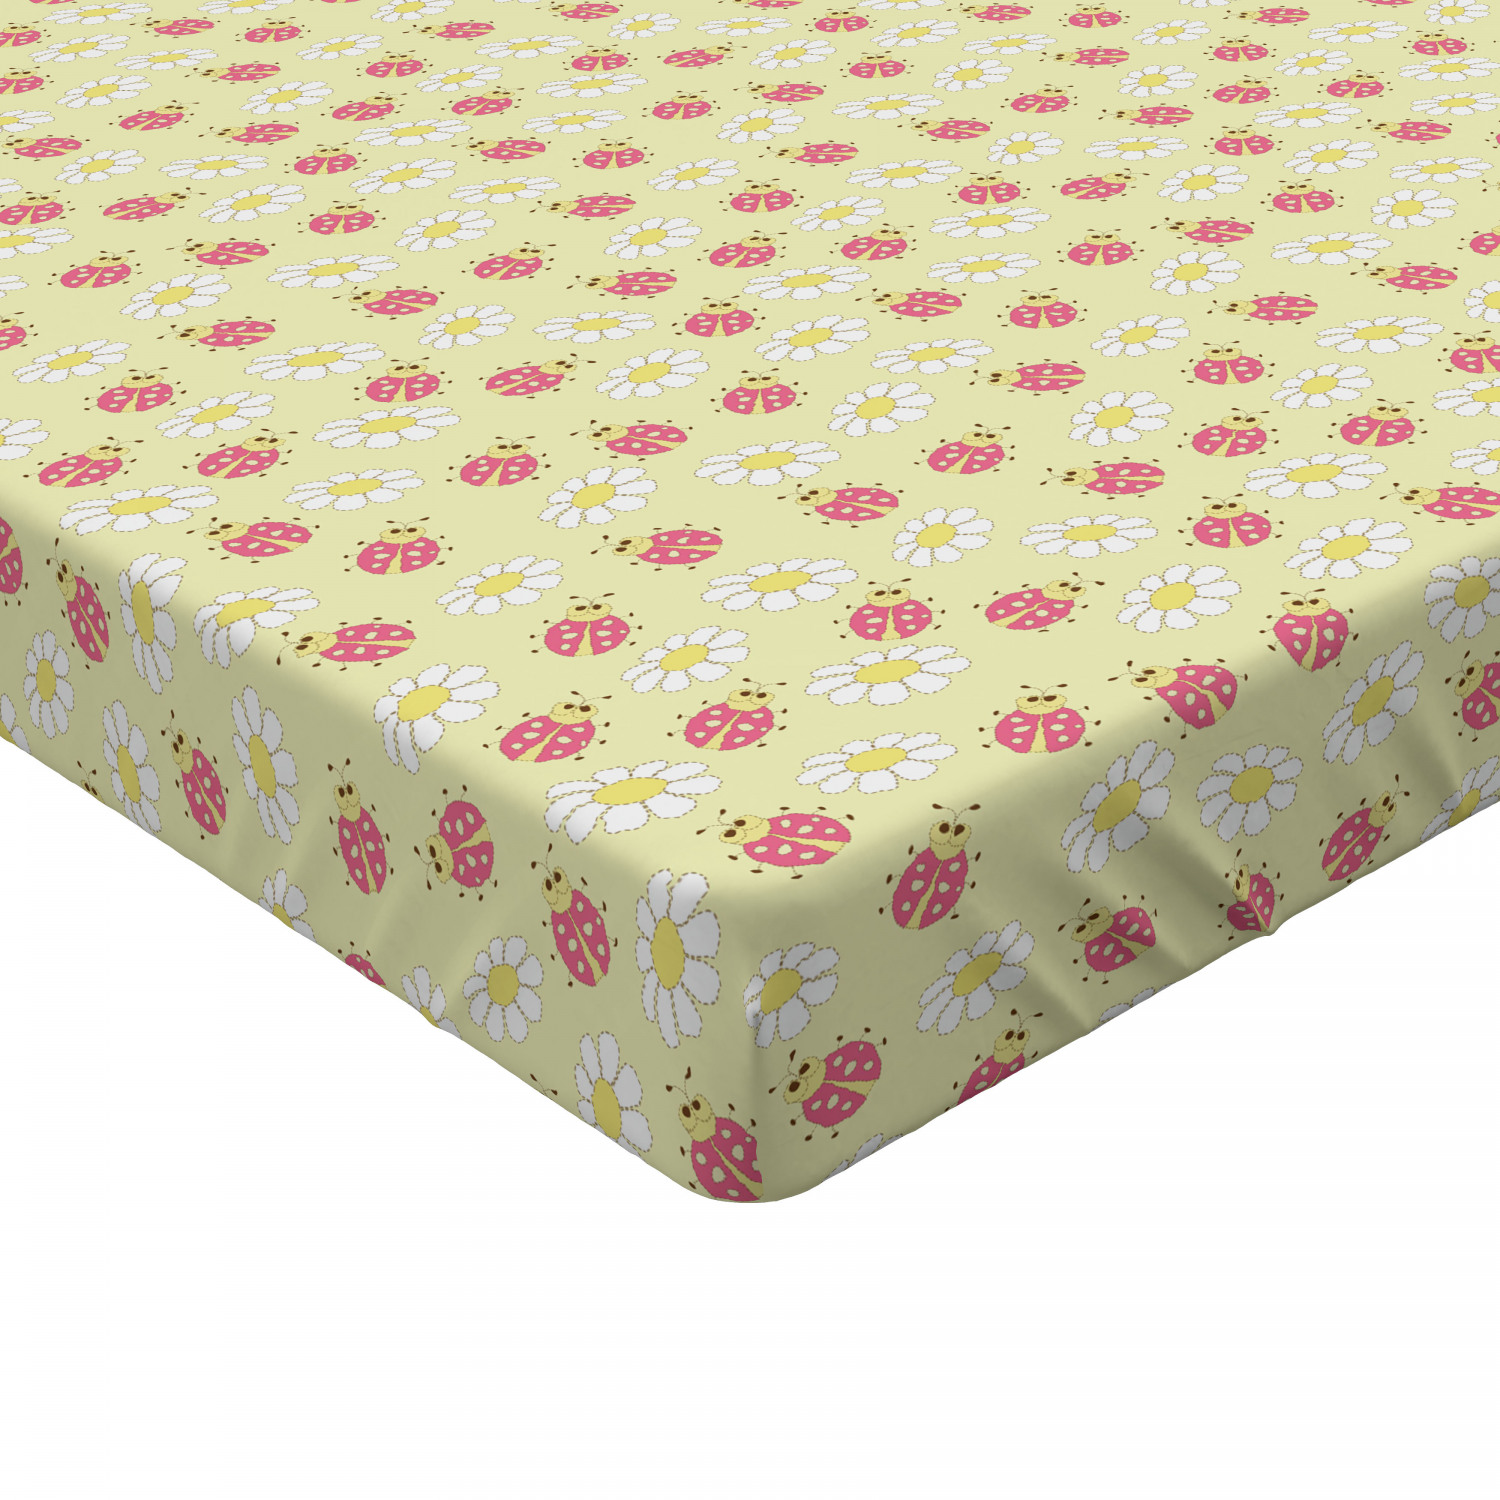 Classic Fabric Fitted Sheet Cover with All-Round Elastic Pocket in 4 Sizes